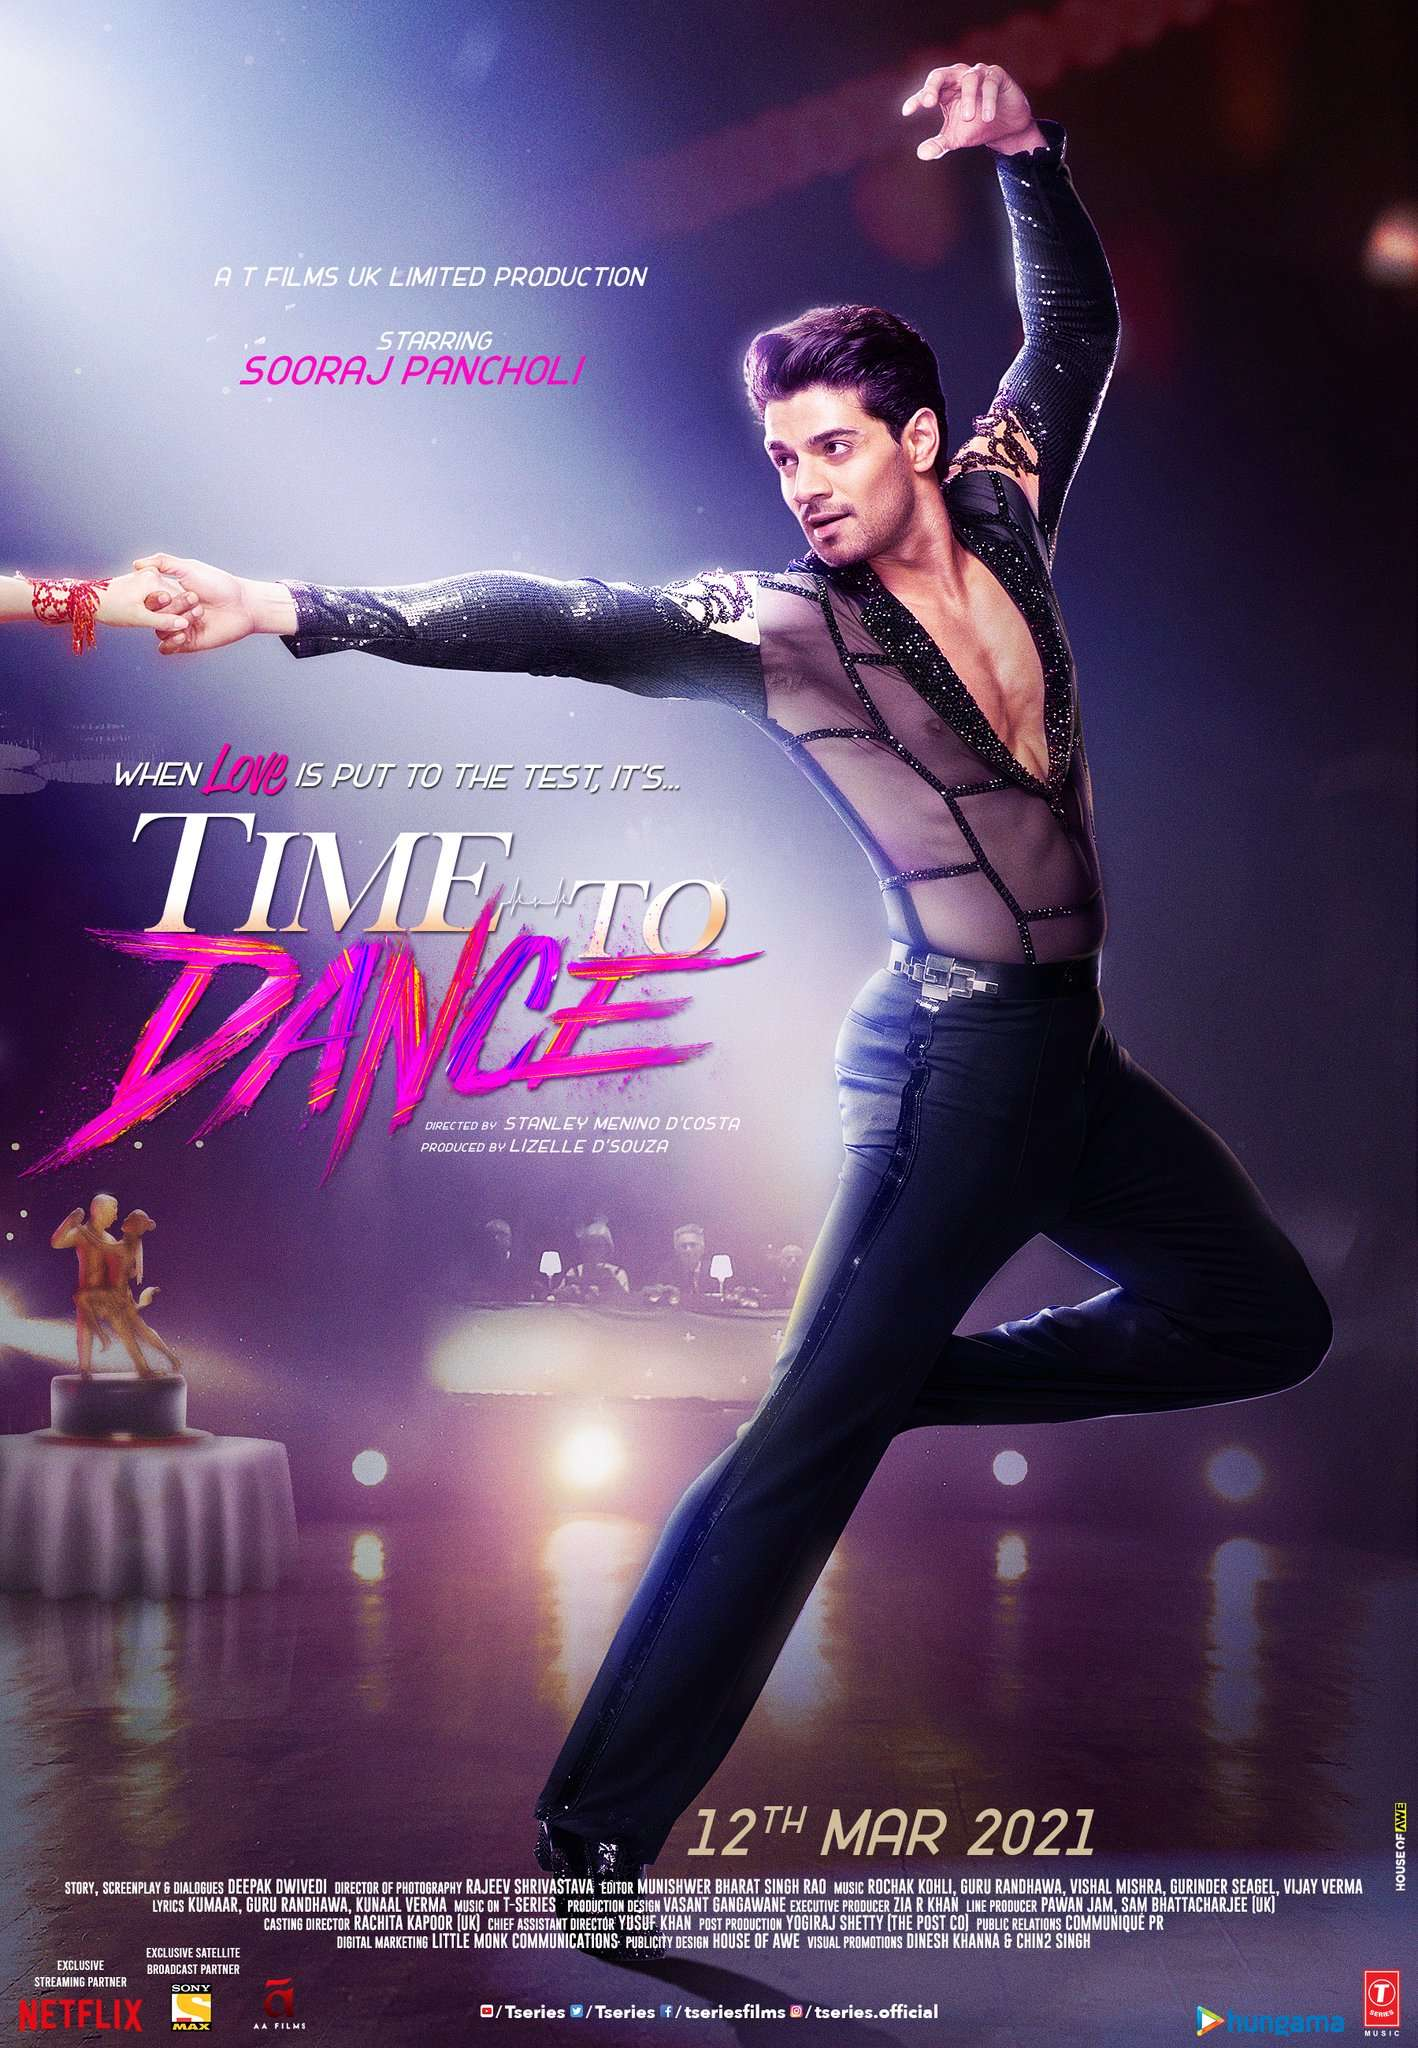 Time To Dance': The Sooraj Pancholi and Isabelle Kaif starrer to release on  March 12, 2021 | Hindi Movie News - Times of India